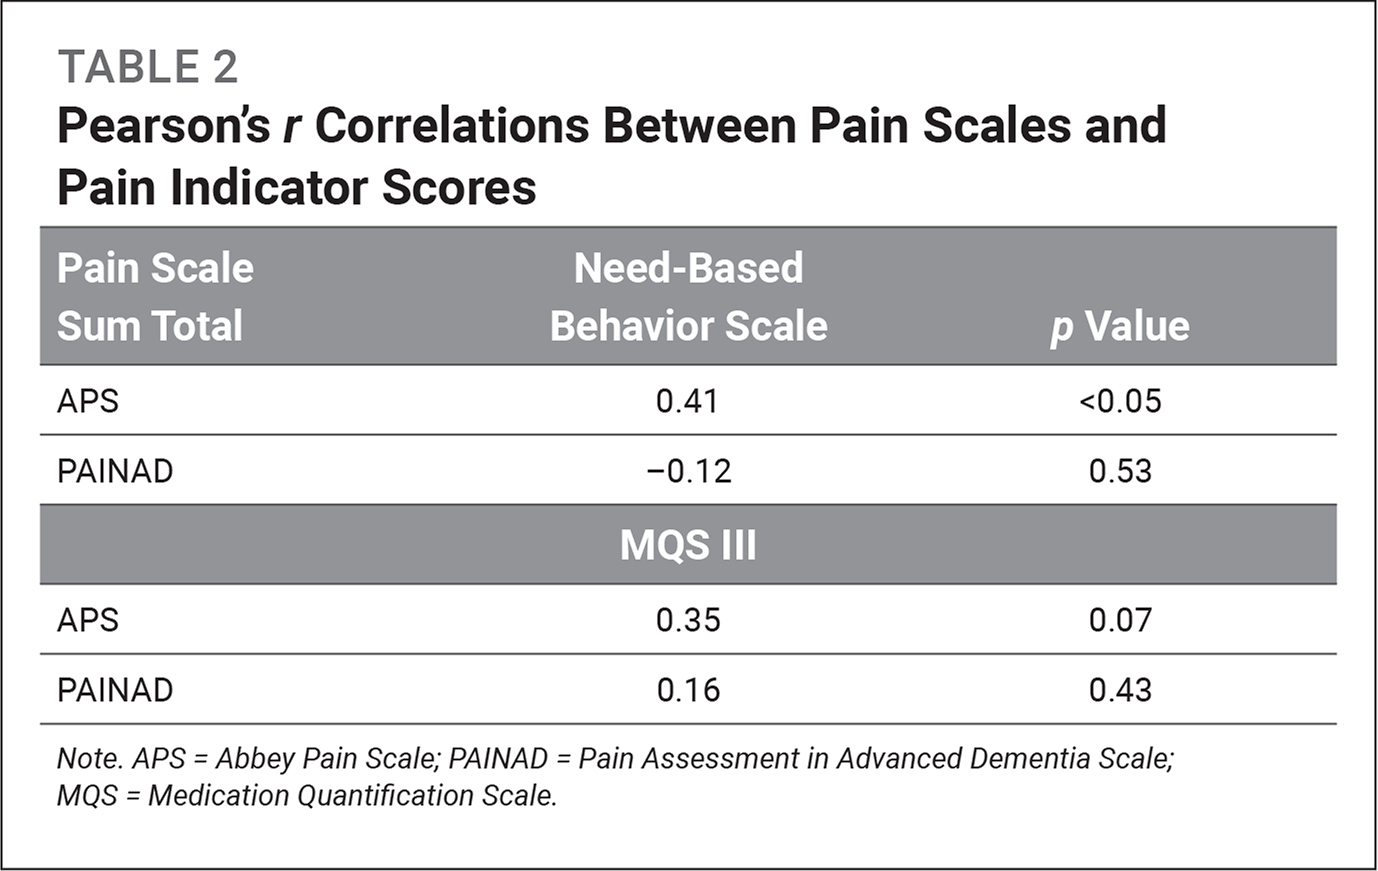 Pearson's r Correlations Between Pain Scales and Pain Indicator Scores